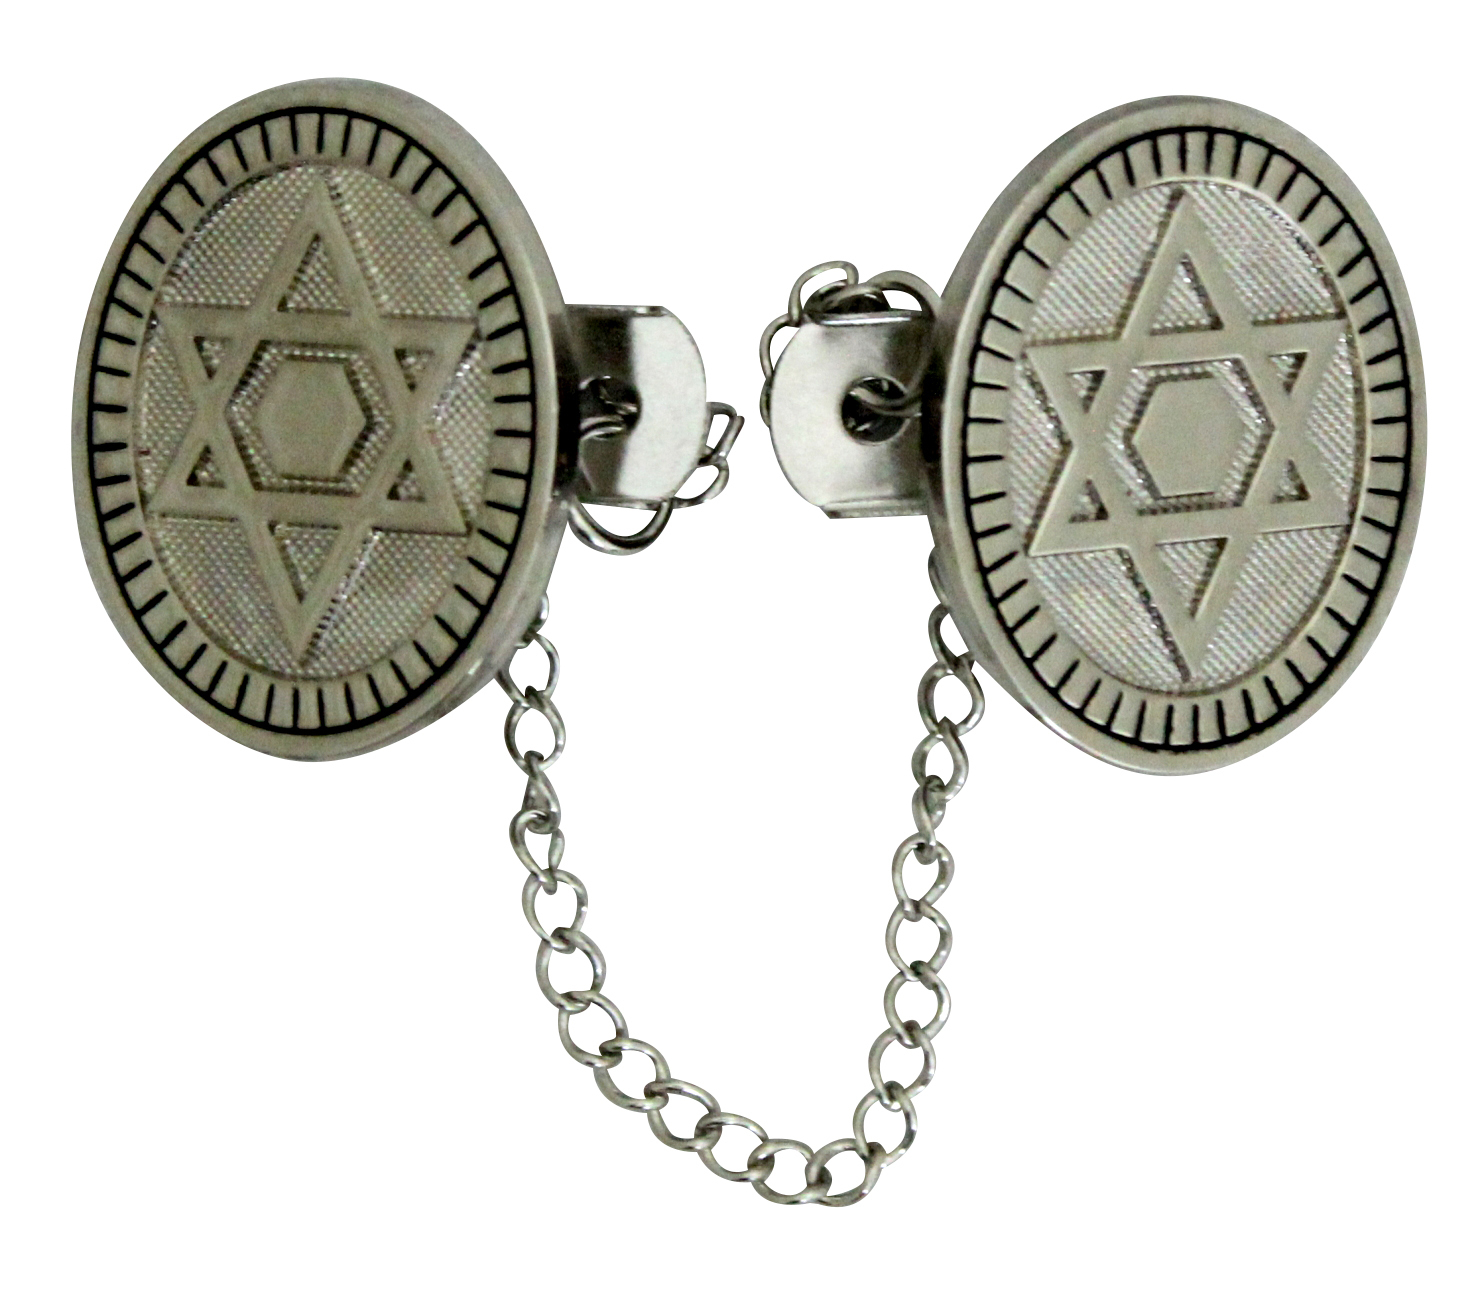 Tallit Talis Clips Prayer Shawl Holder Magen David Star Eliptic Judaica